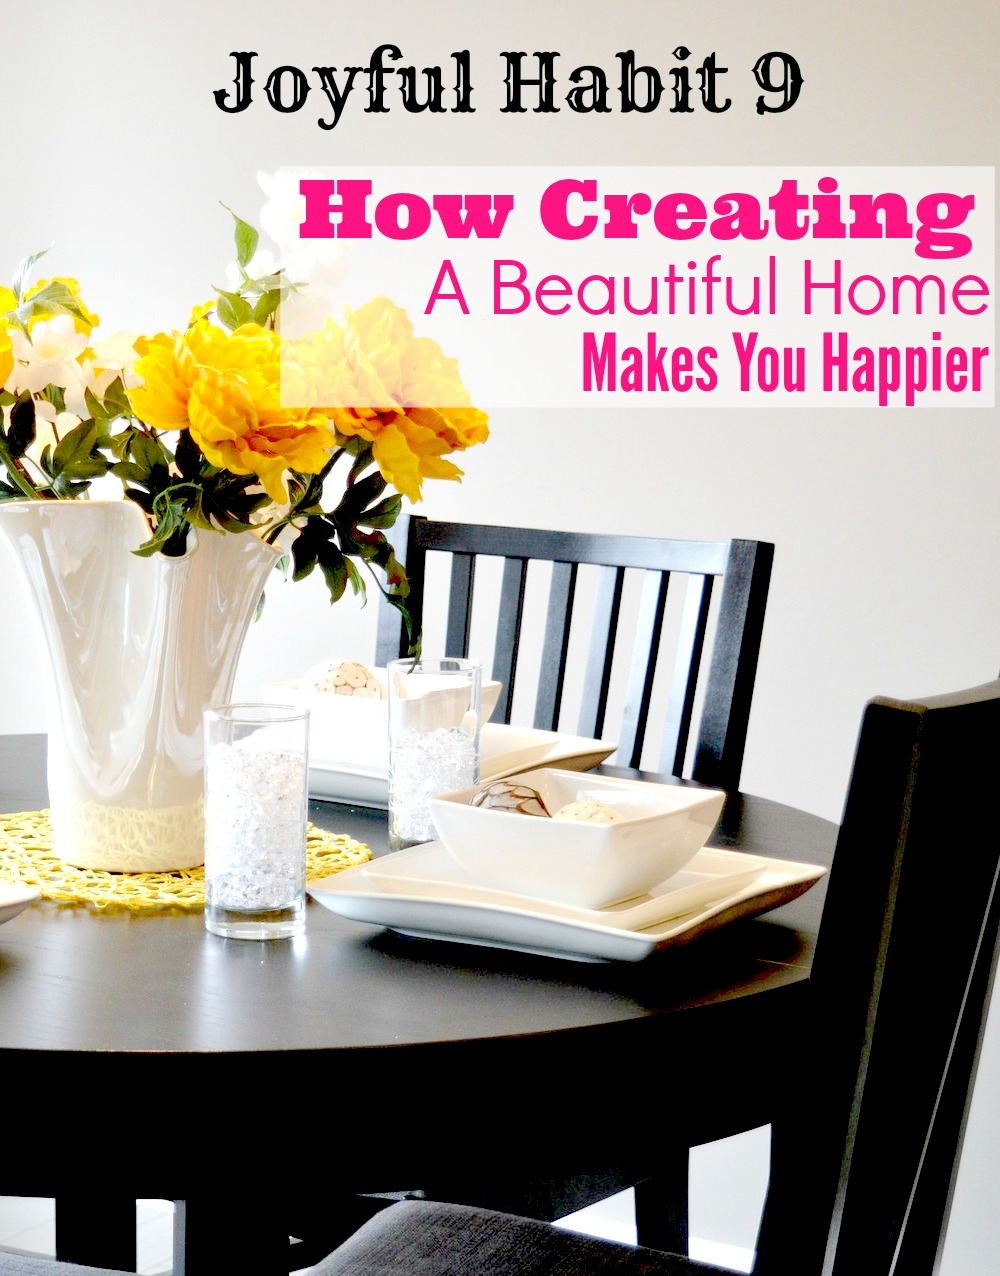 joyful habit 9 create a beautiful home mama finds her way